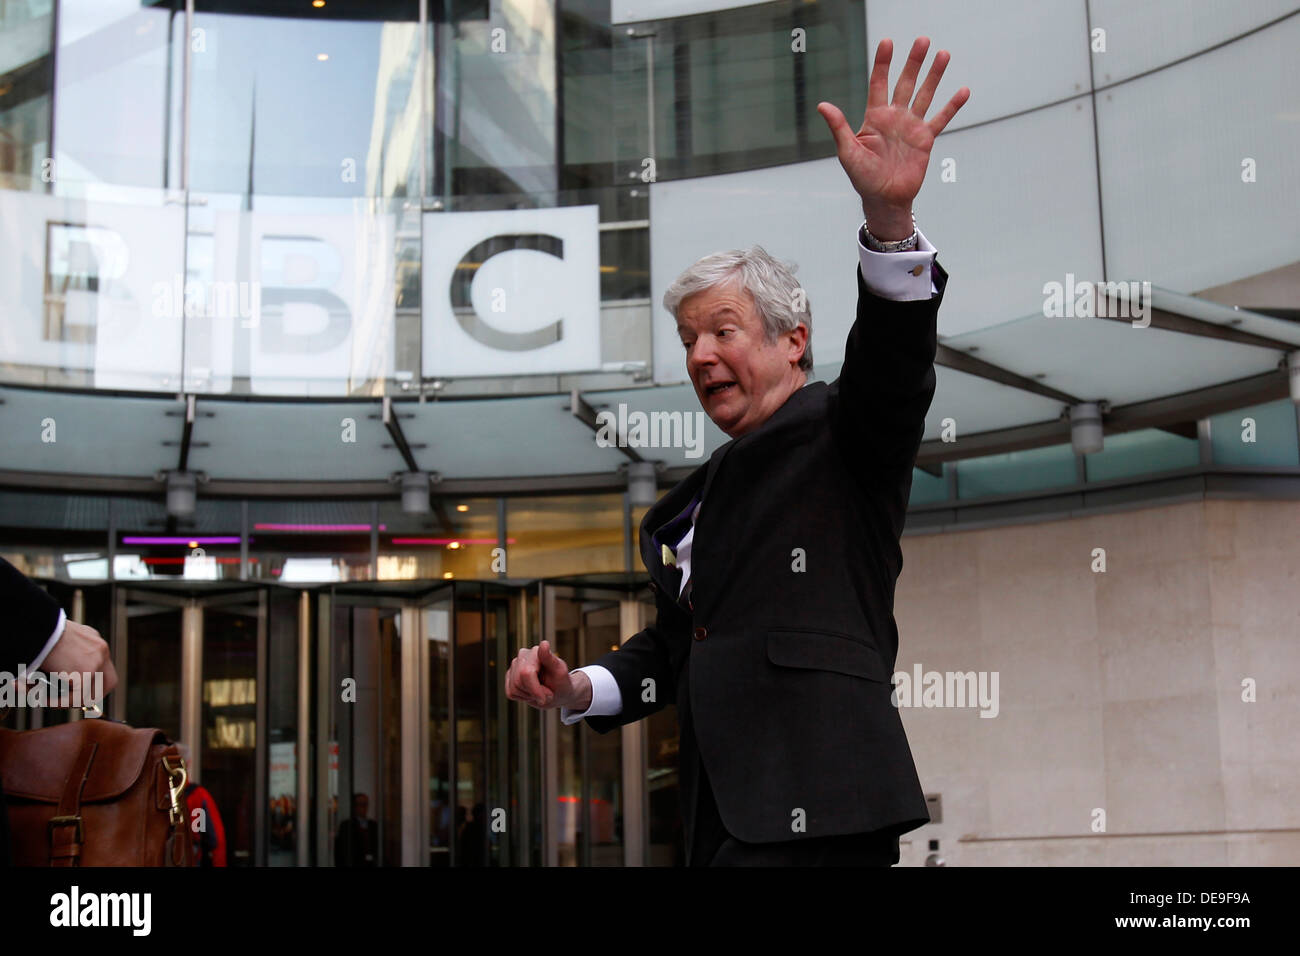 new bbc boss tony hall arrives to bbc broadcasting house for his new bbc boss tony hall arrives to bbc broadcasting house for his first day work at the corporation in central london britain 02